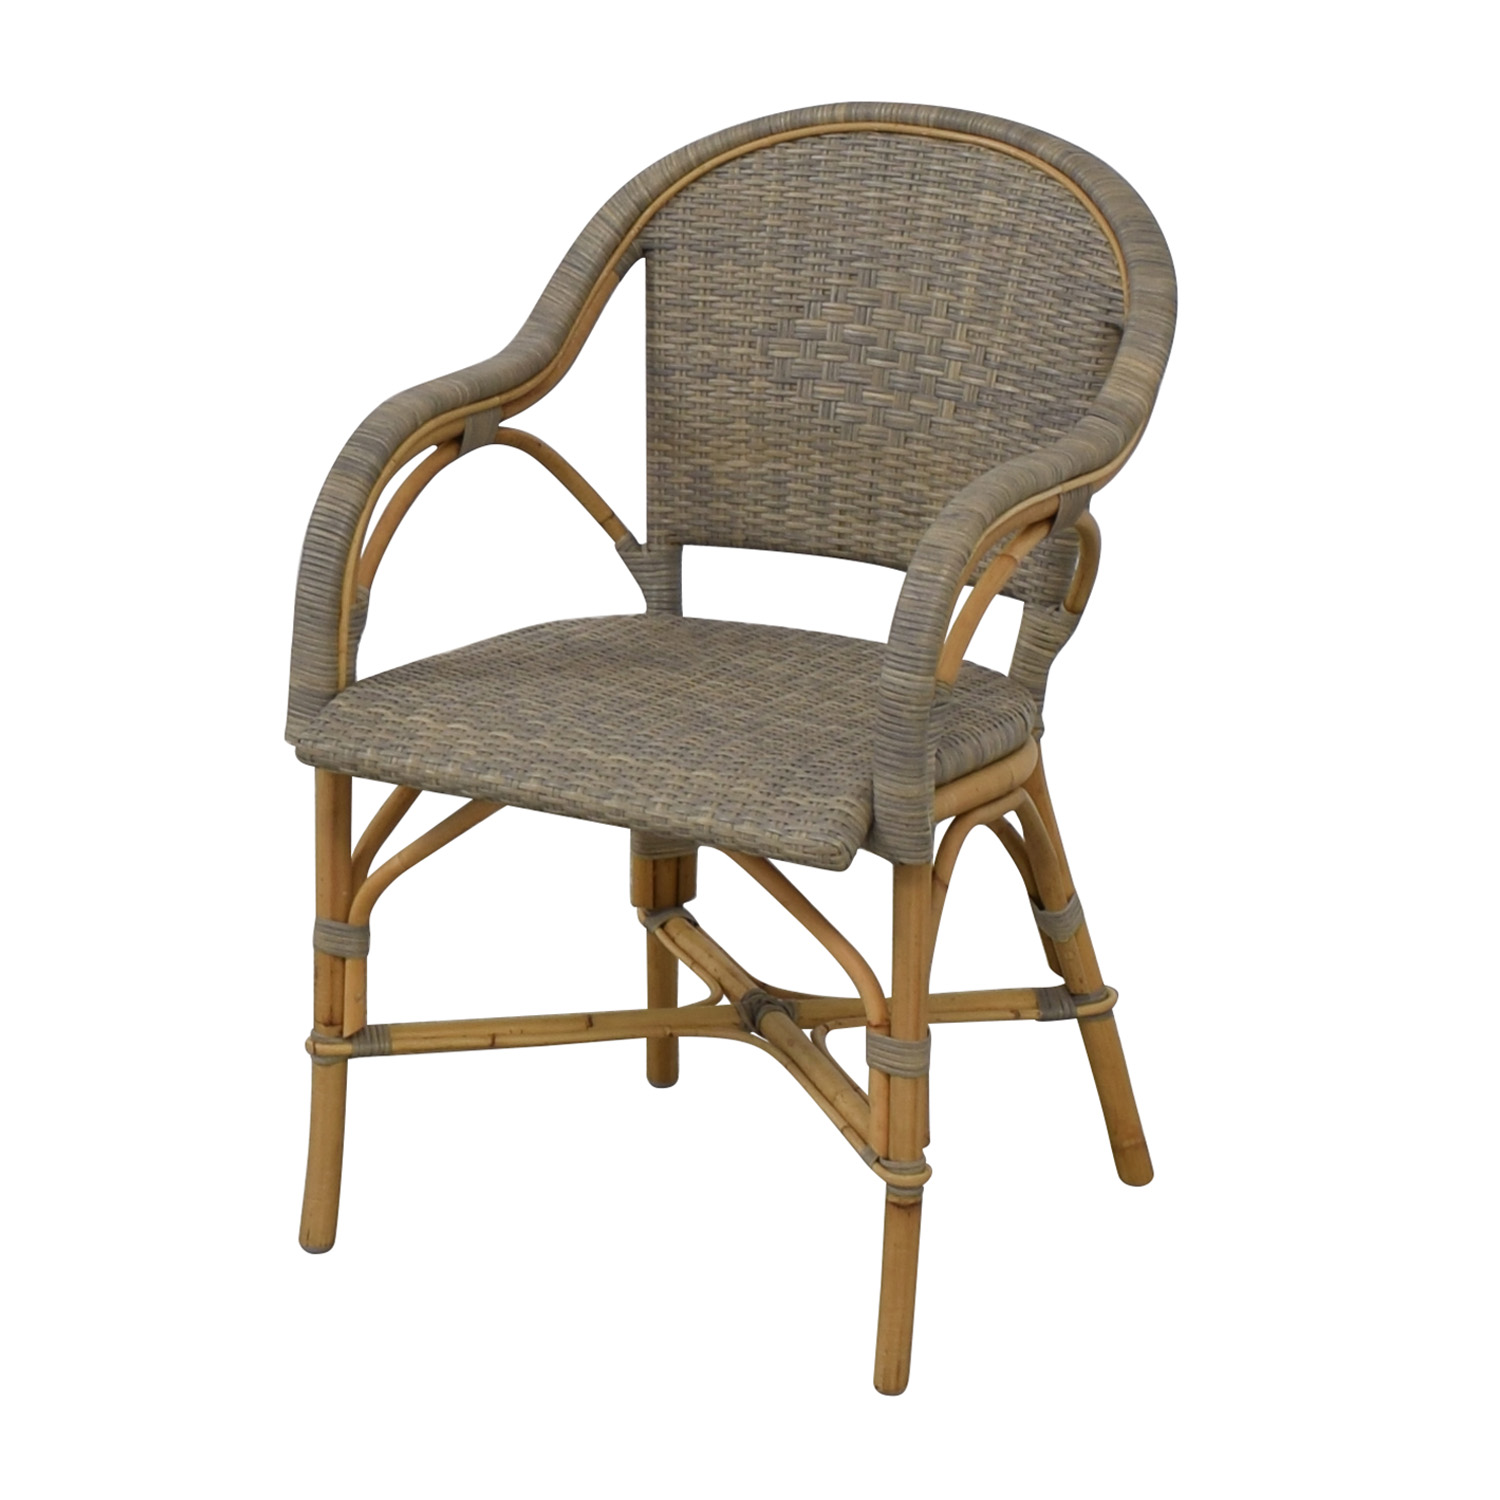 Serena & Lily Serena & Lily Sunwashed Riviera Armchairs second hand